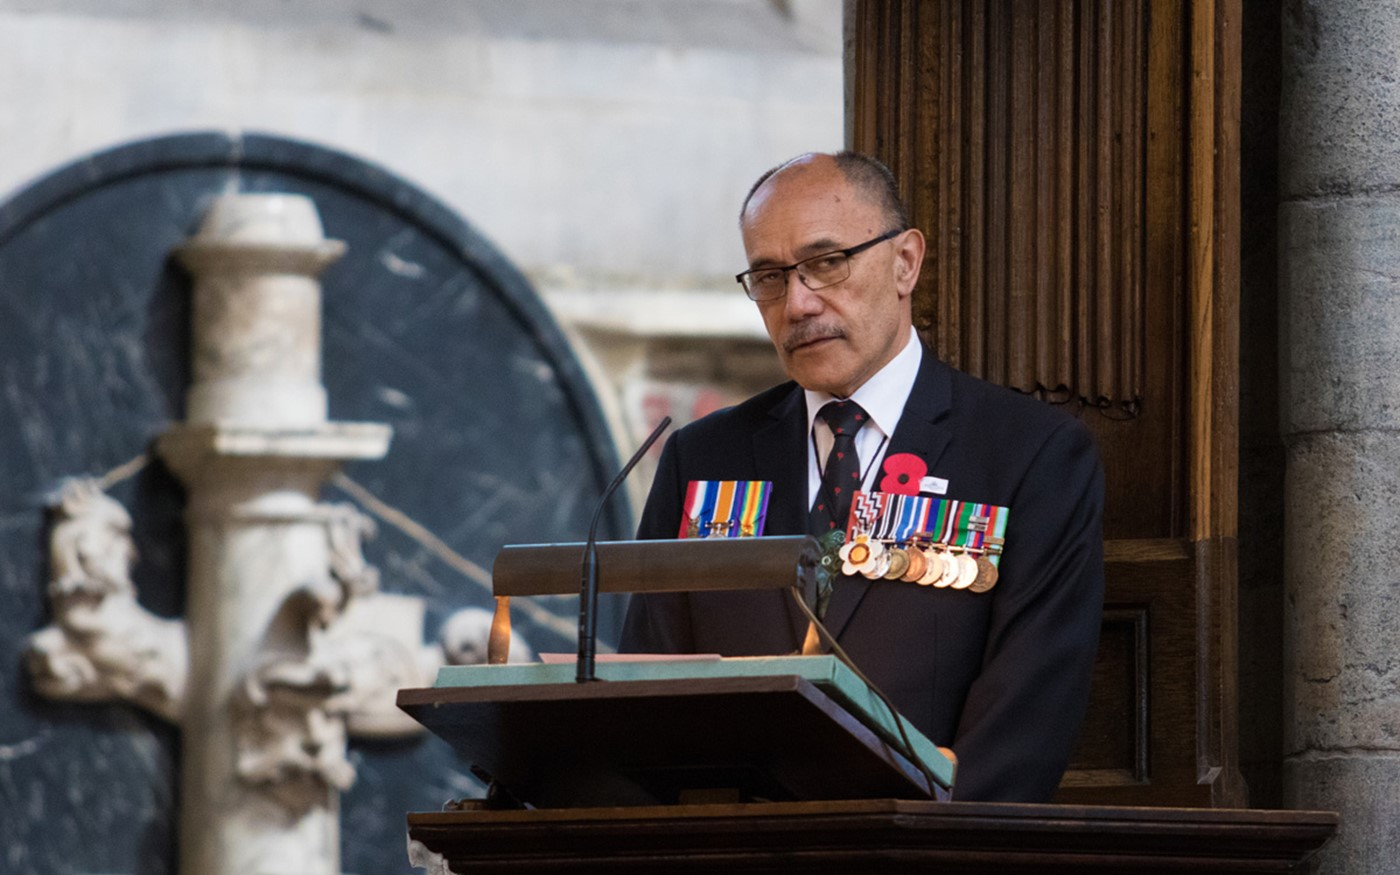 His Excellency the High Commissioner for New Zealand, Lieutenant General The Right Honourable Sir Jerry Mateparae GNZM QSO KStJ, reads St Micah 4: 1-5